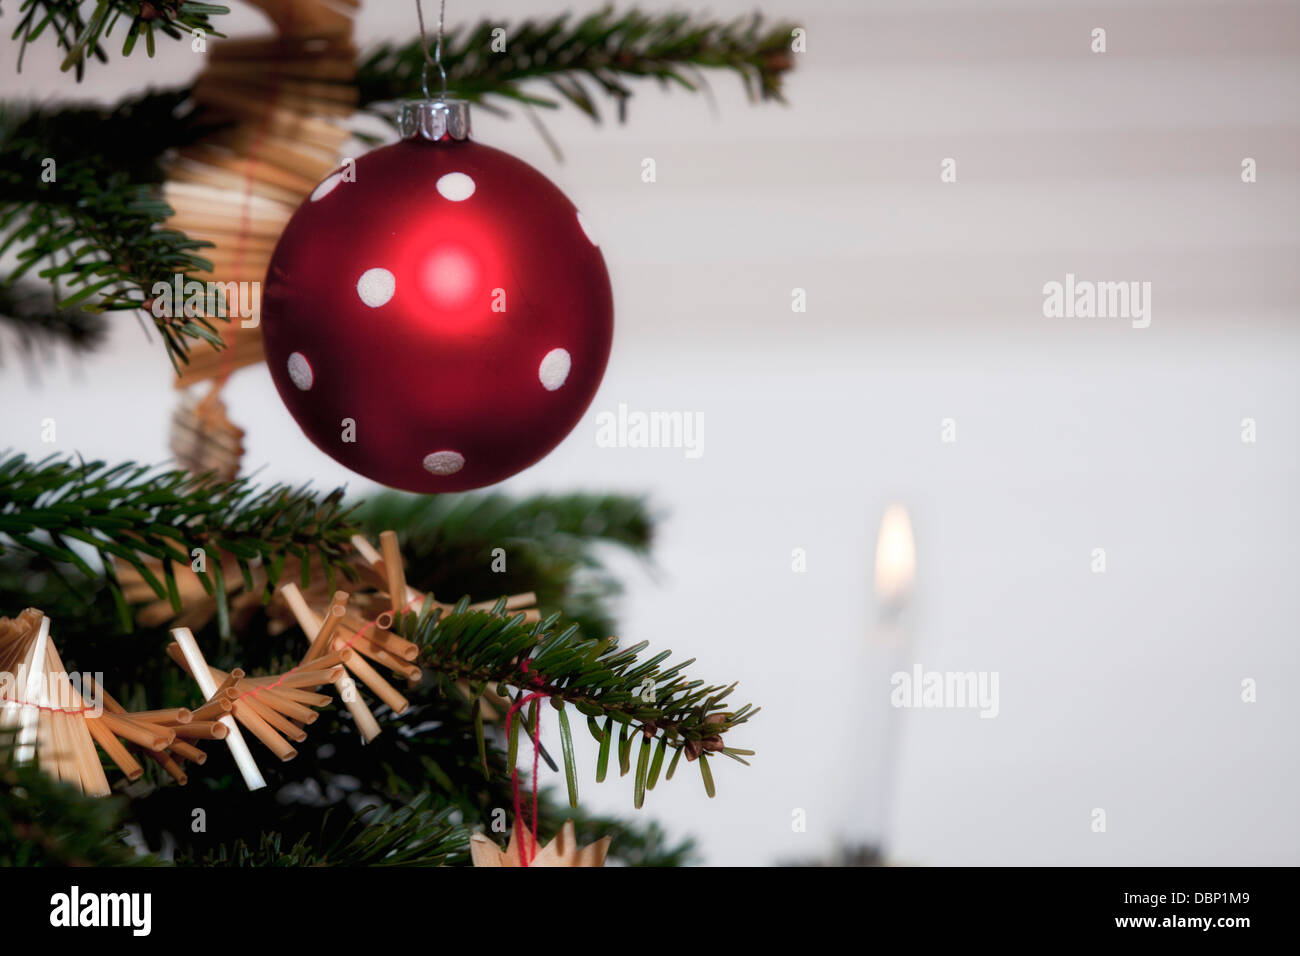 Christmas Baubles Germany : Christmas decoration bauble and burning candle munich